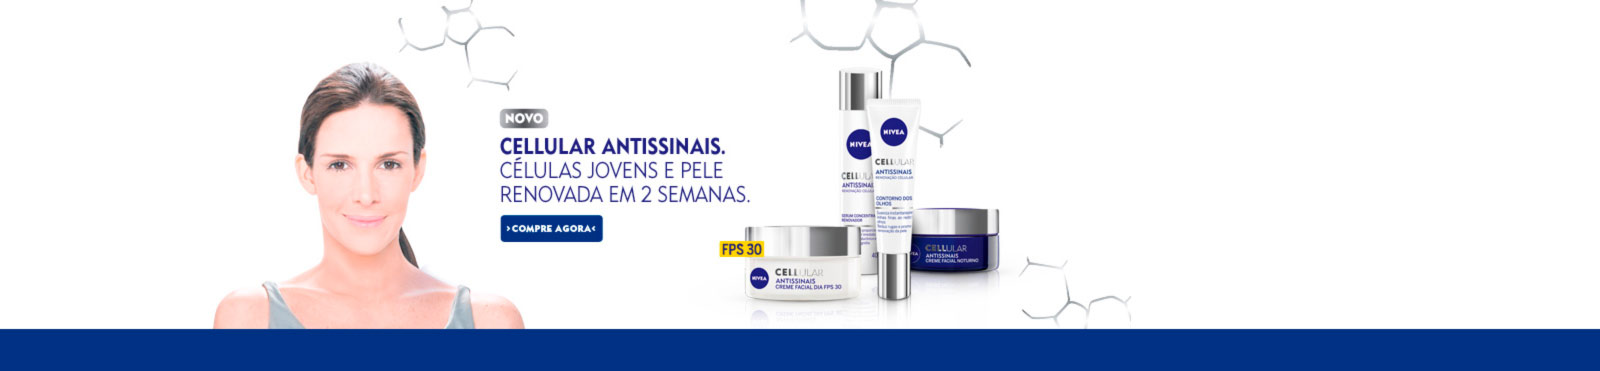 nivea antisinais OUT